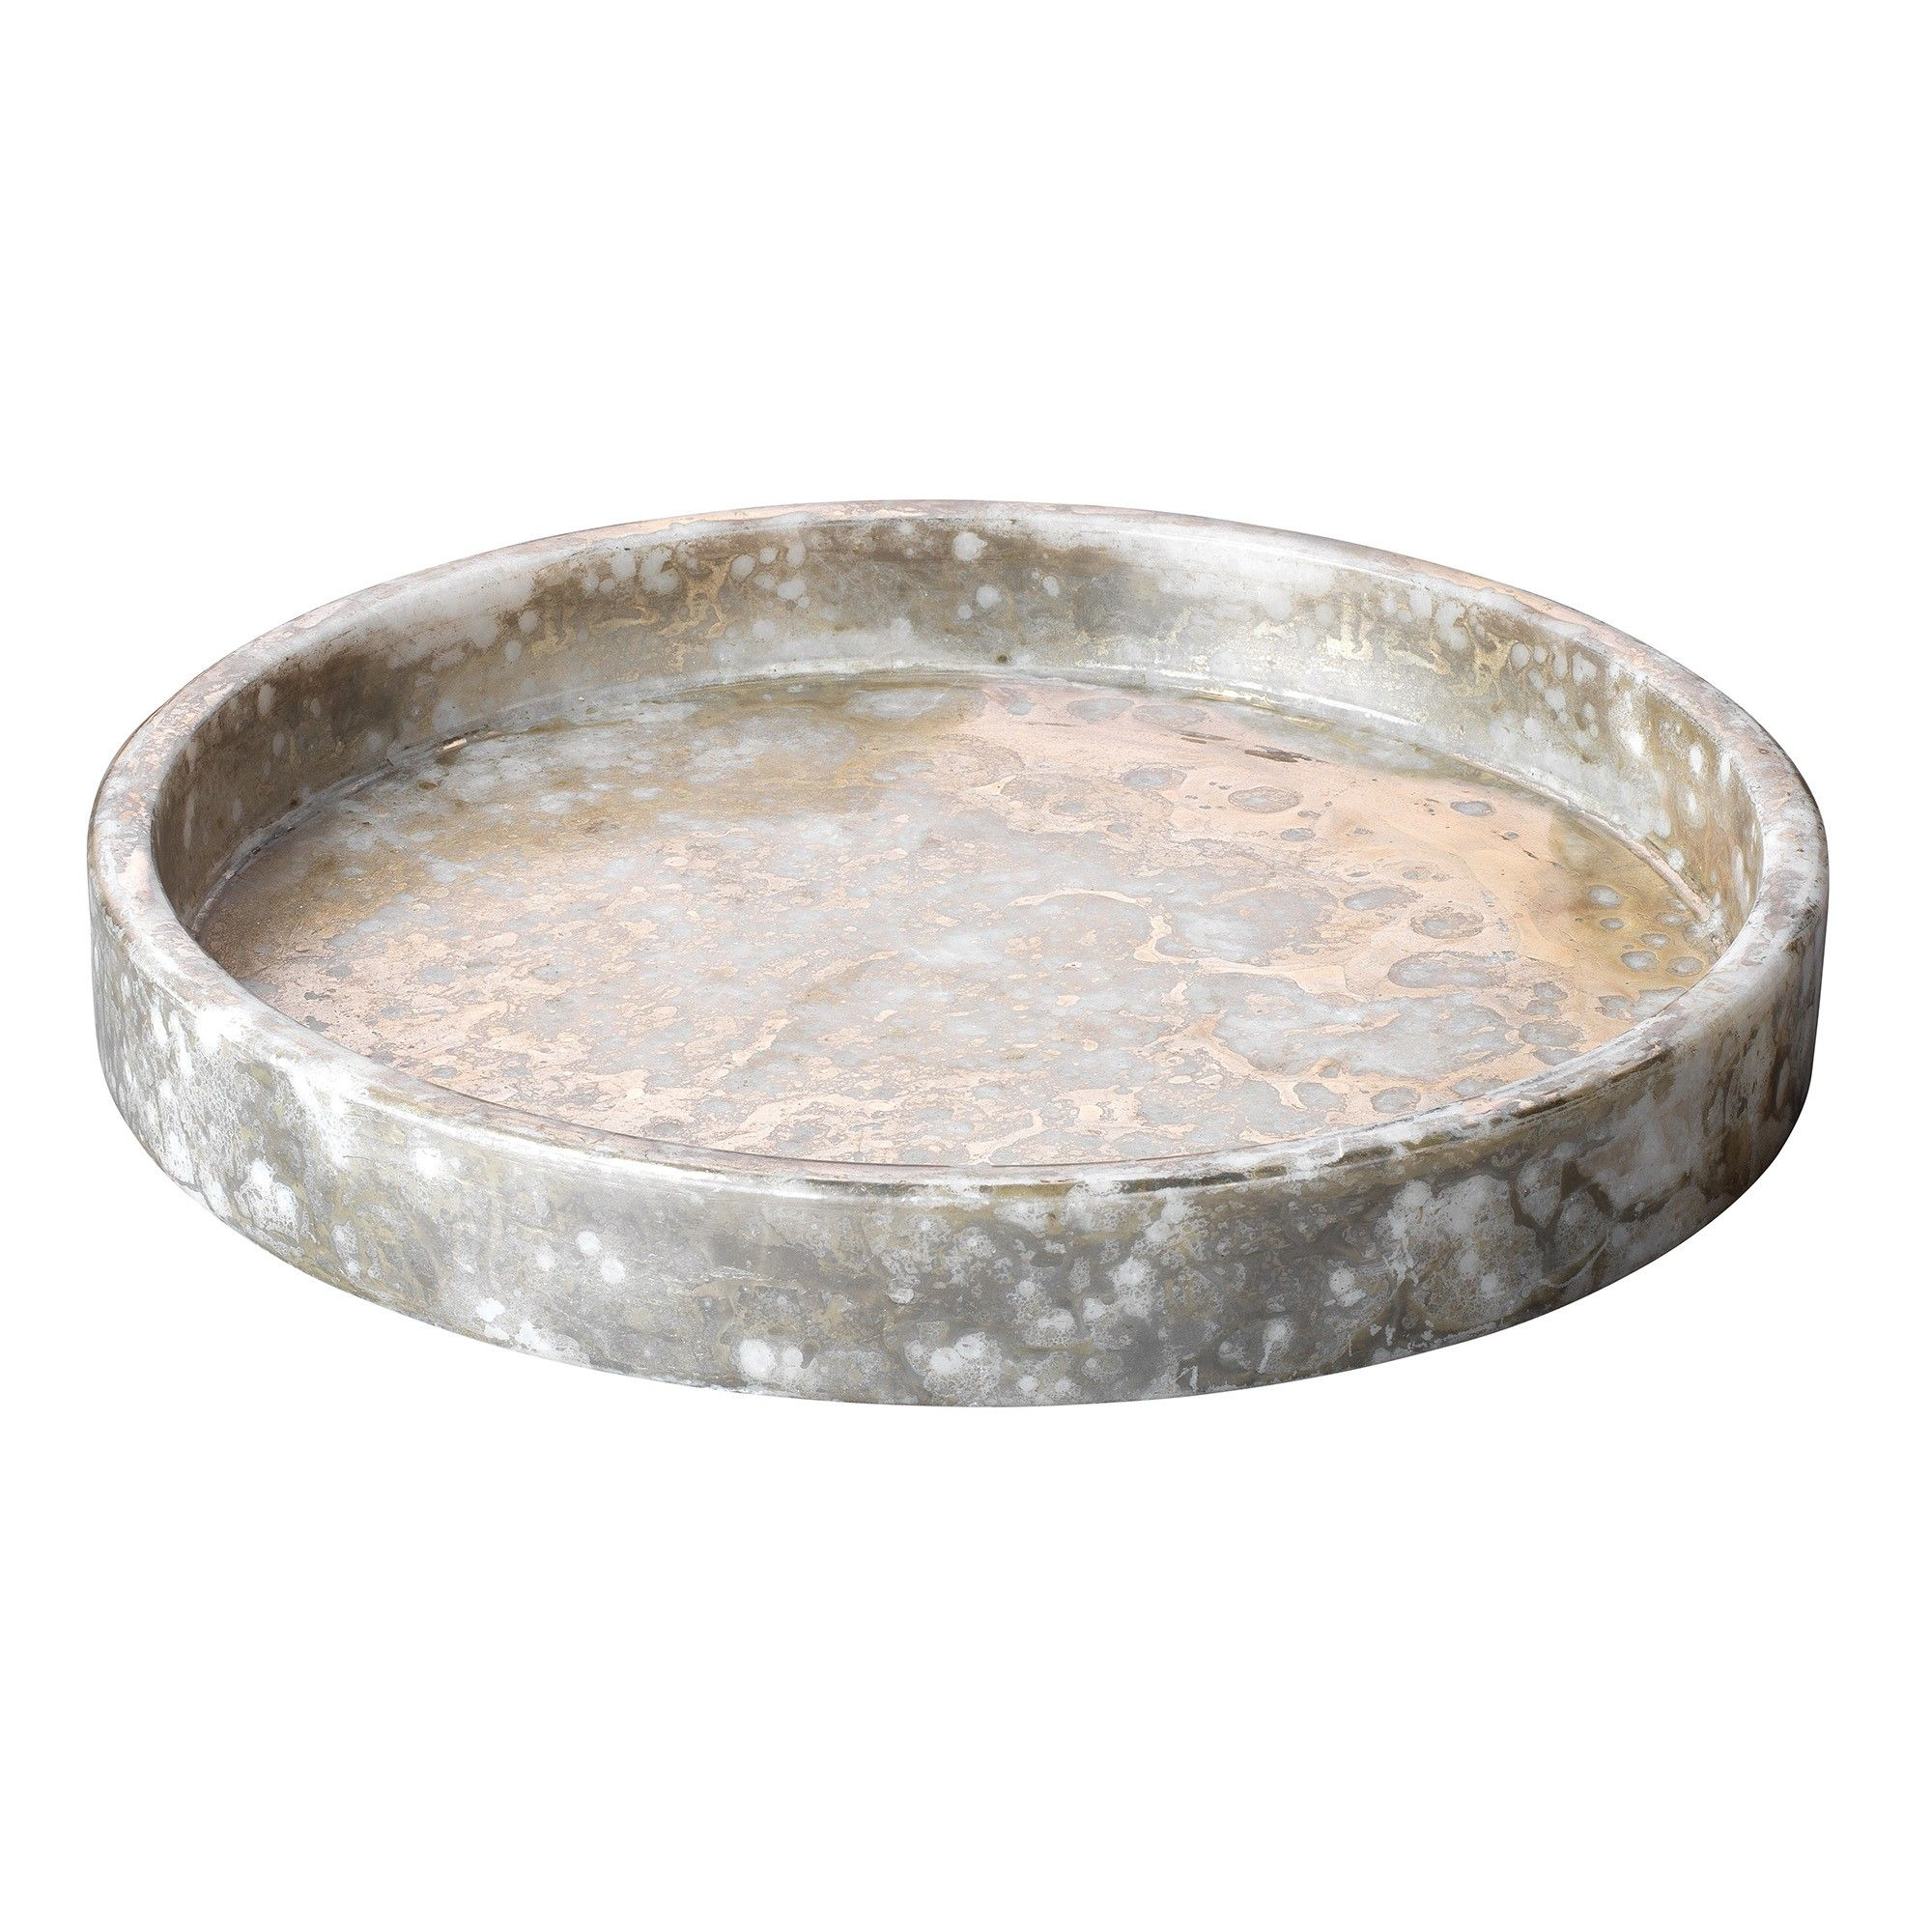 Unique Decorative Bowls A Low Round Marble Bowl With A Unique Silver And Gold Finishnot